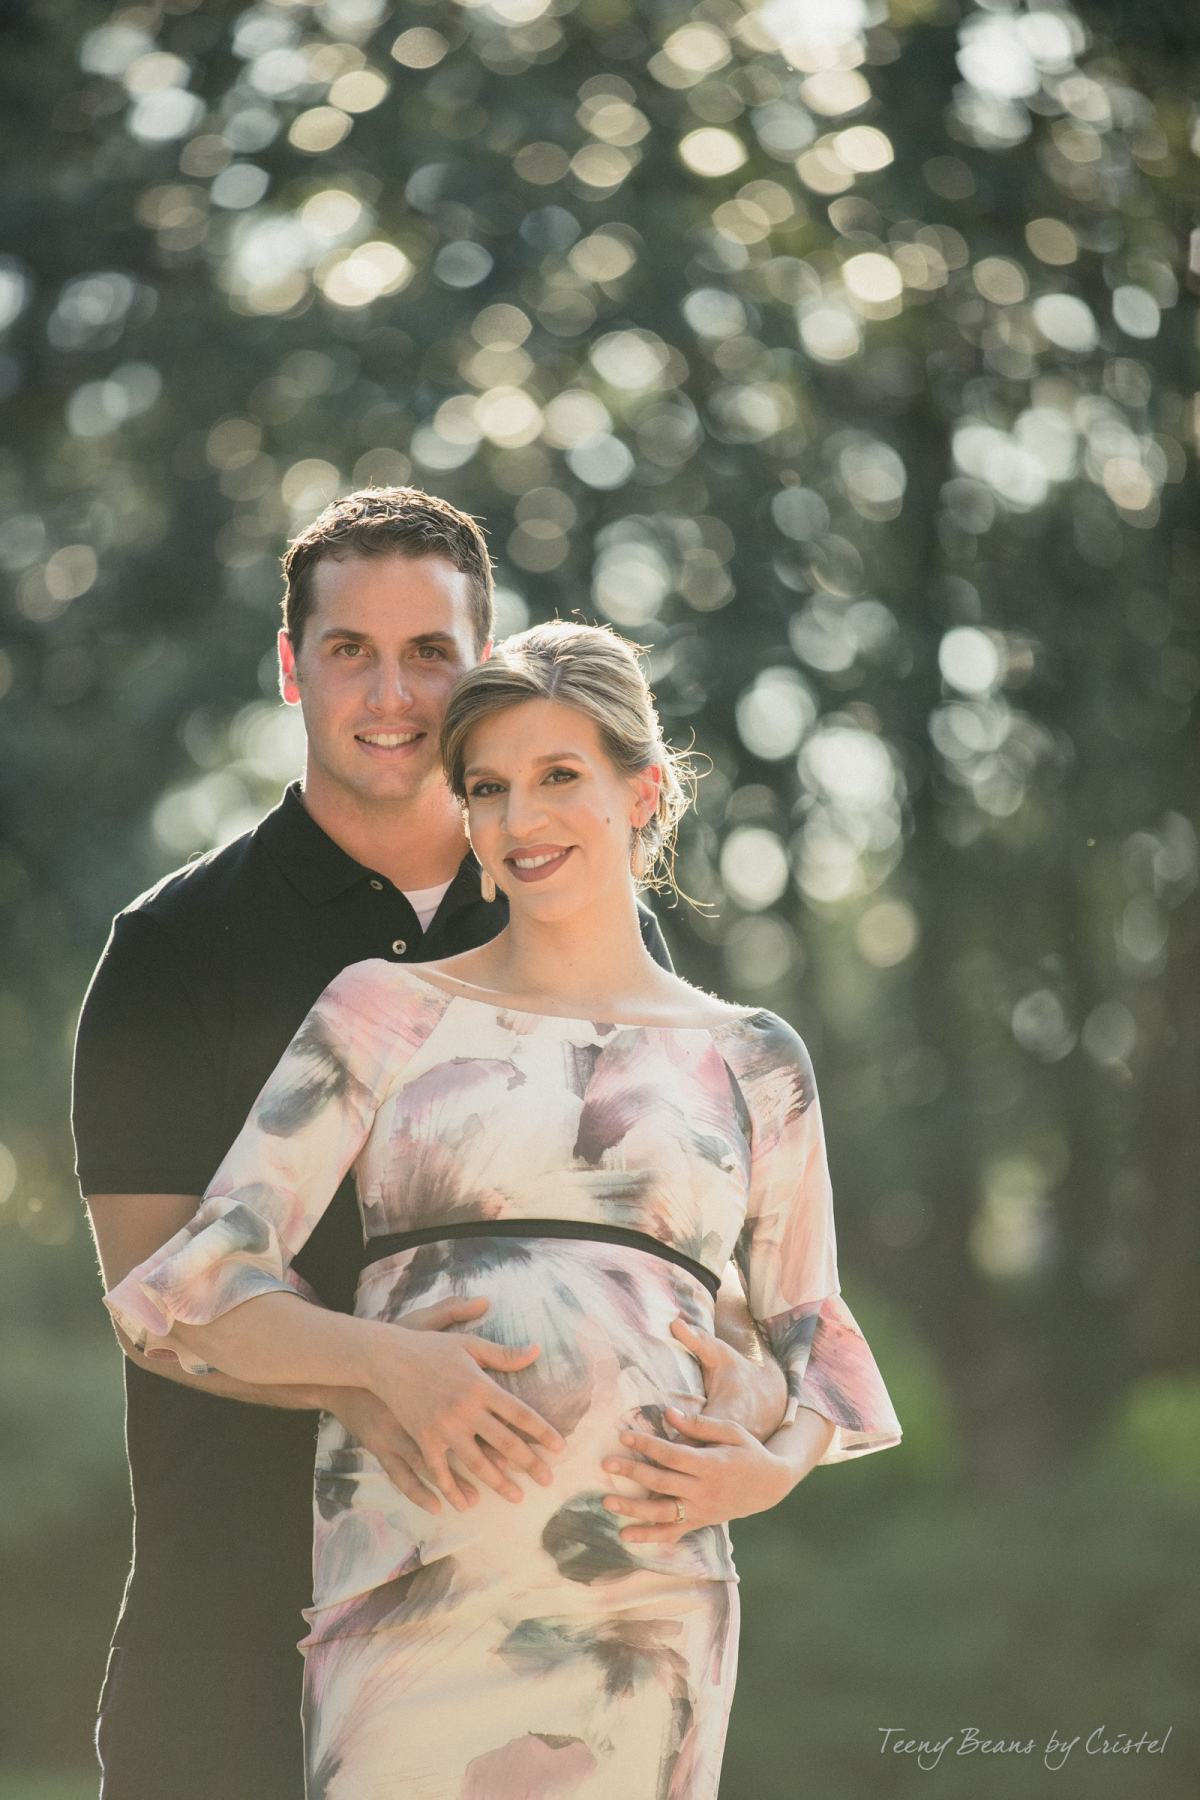 Raleigh-Maternity-Photography-Axia-Zach-6 southern pines maternity photographer - axia & zach